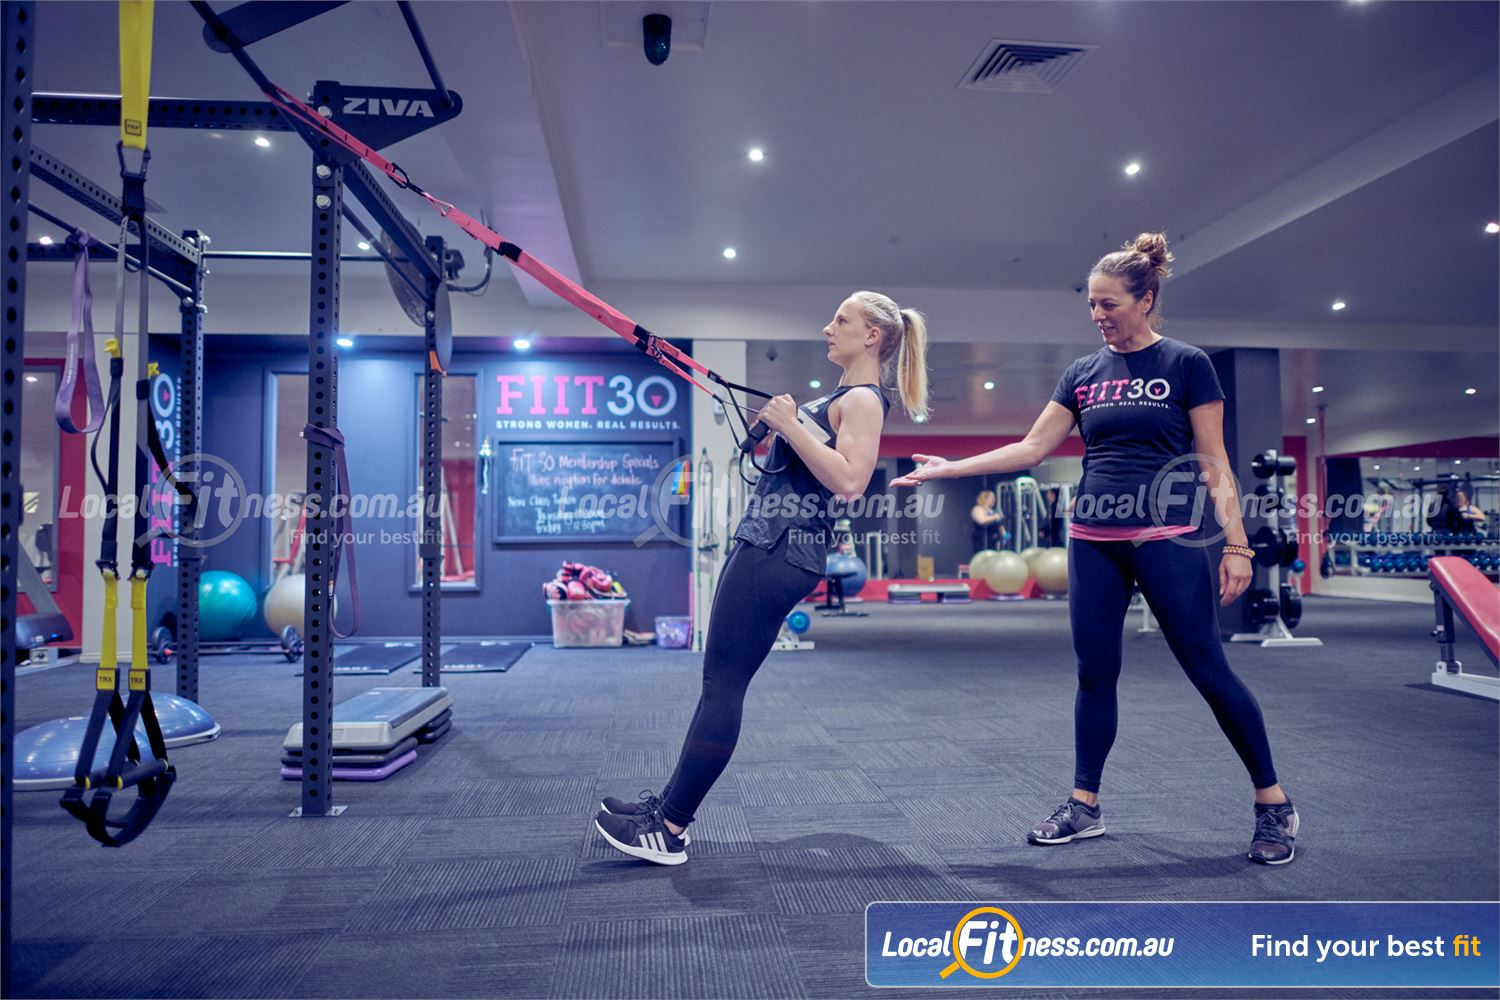 Fernwood Fitness Near Templestowe Lower Our Bulleen gym team can take you through a TRX functional training workout.